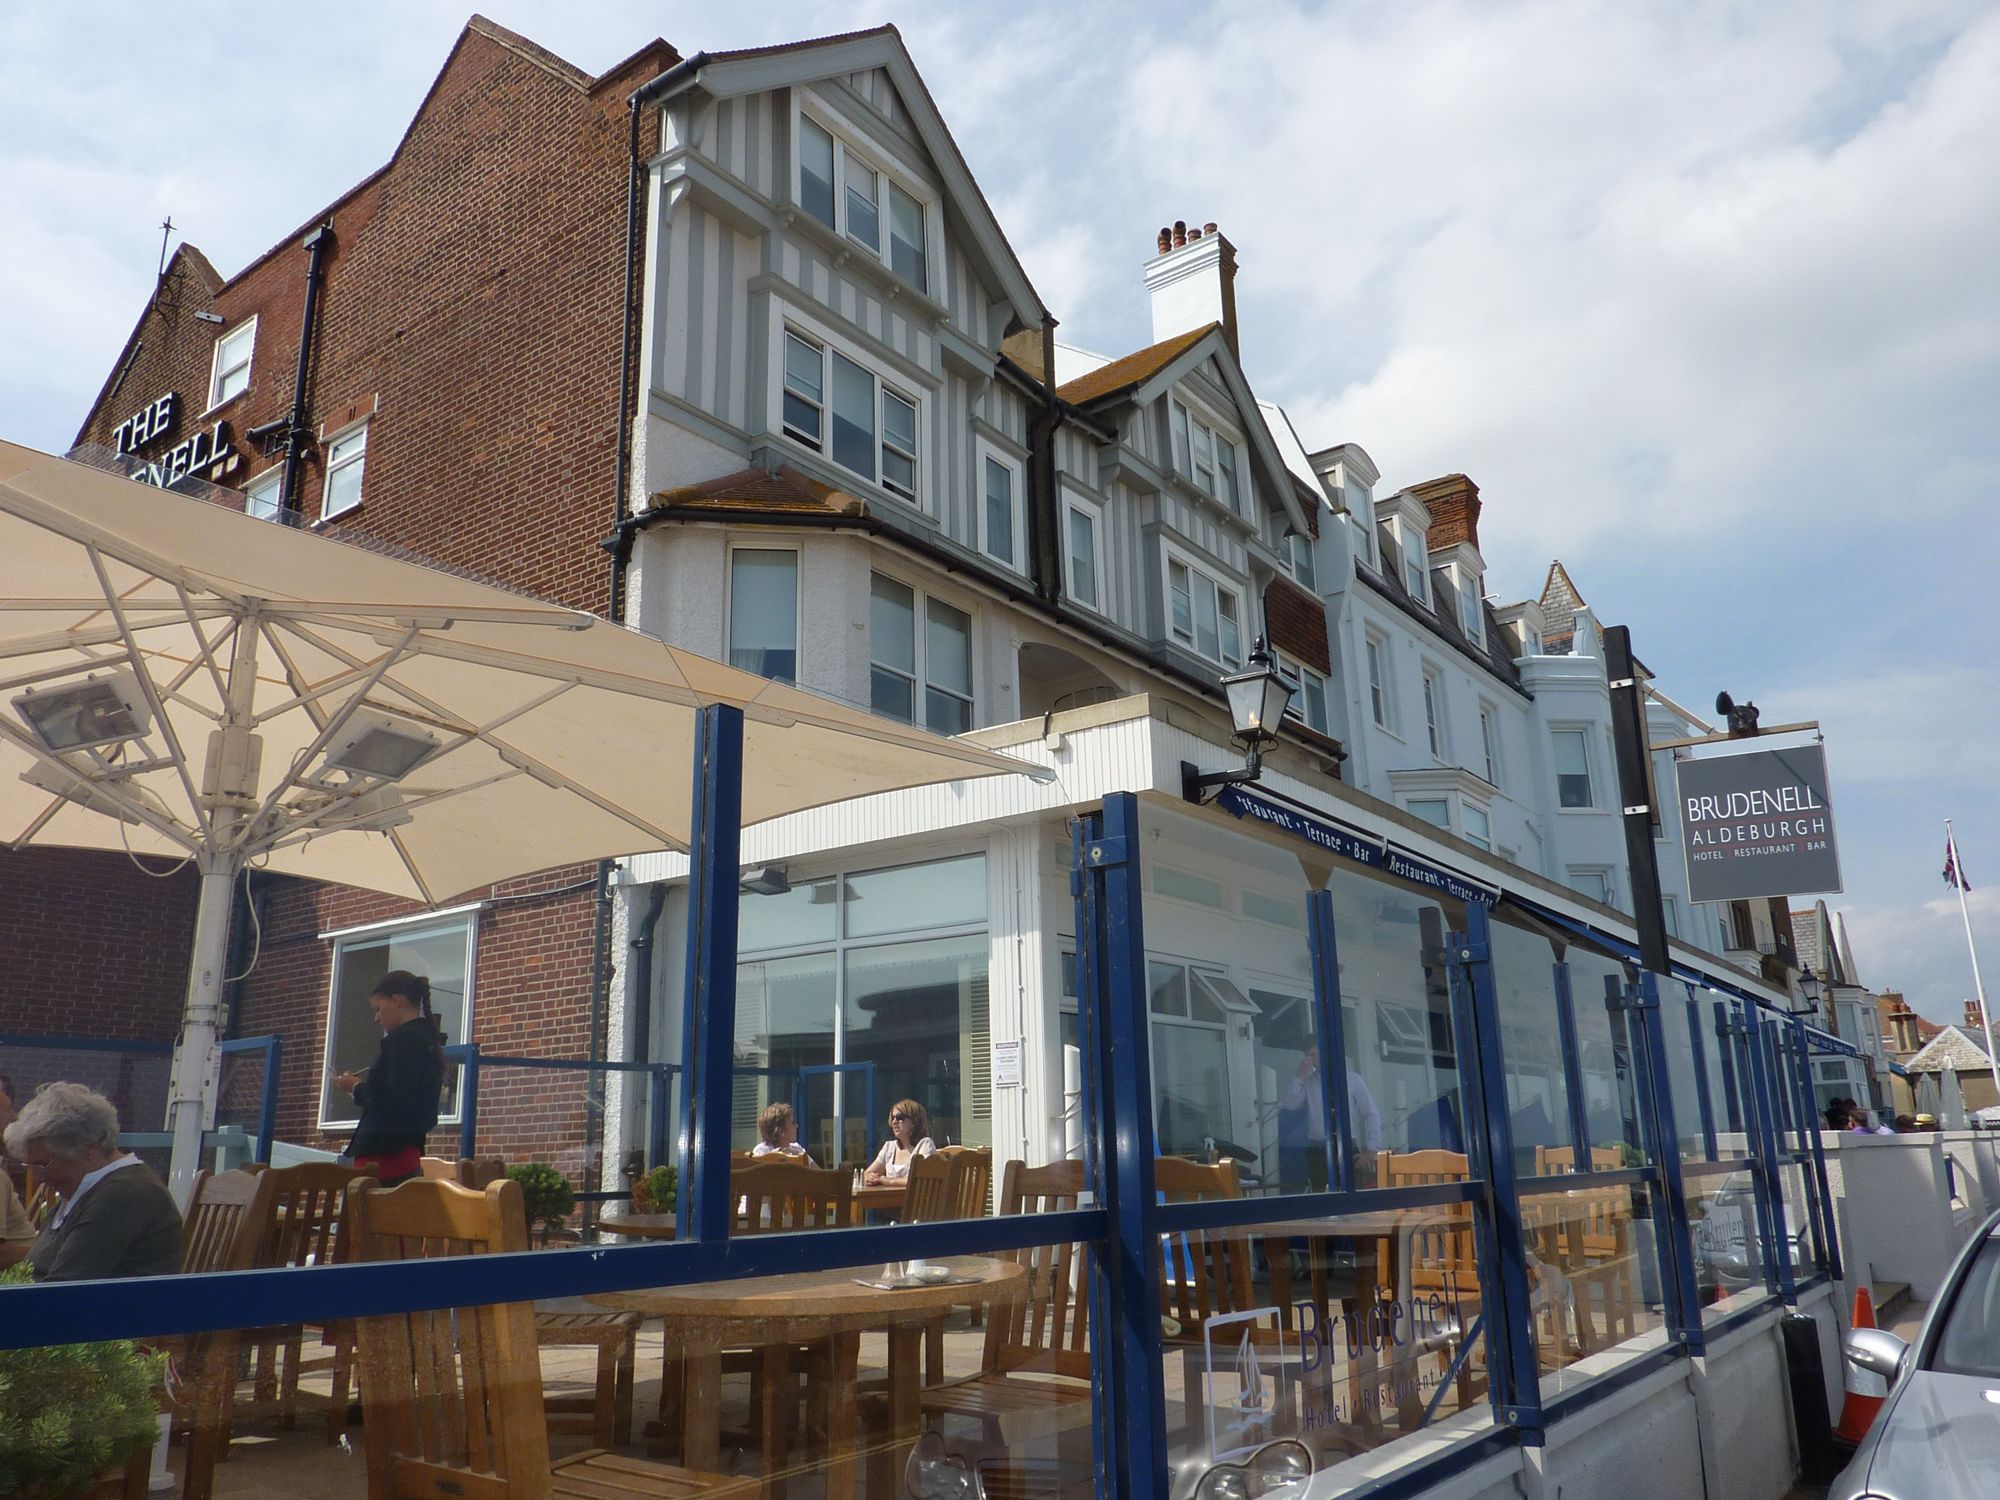 Hotels in Aldeburgh holidays at Cool Places